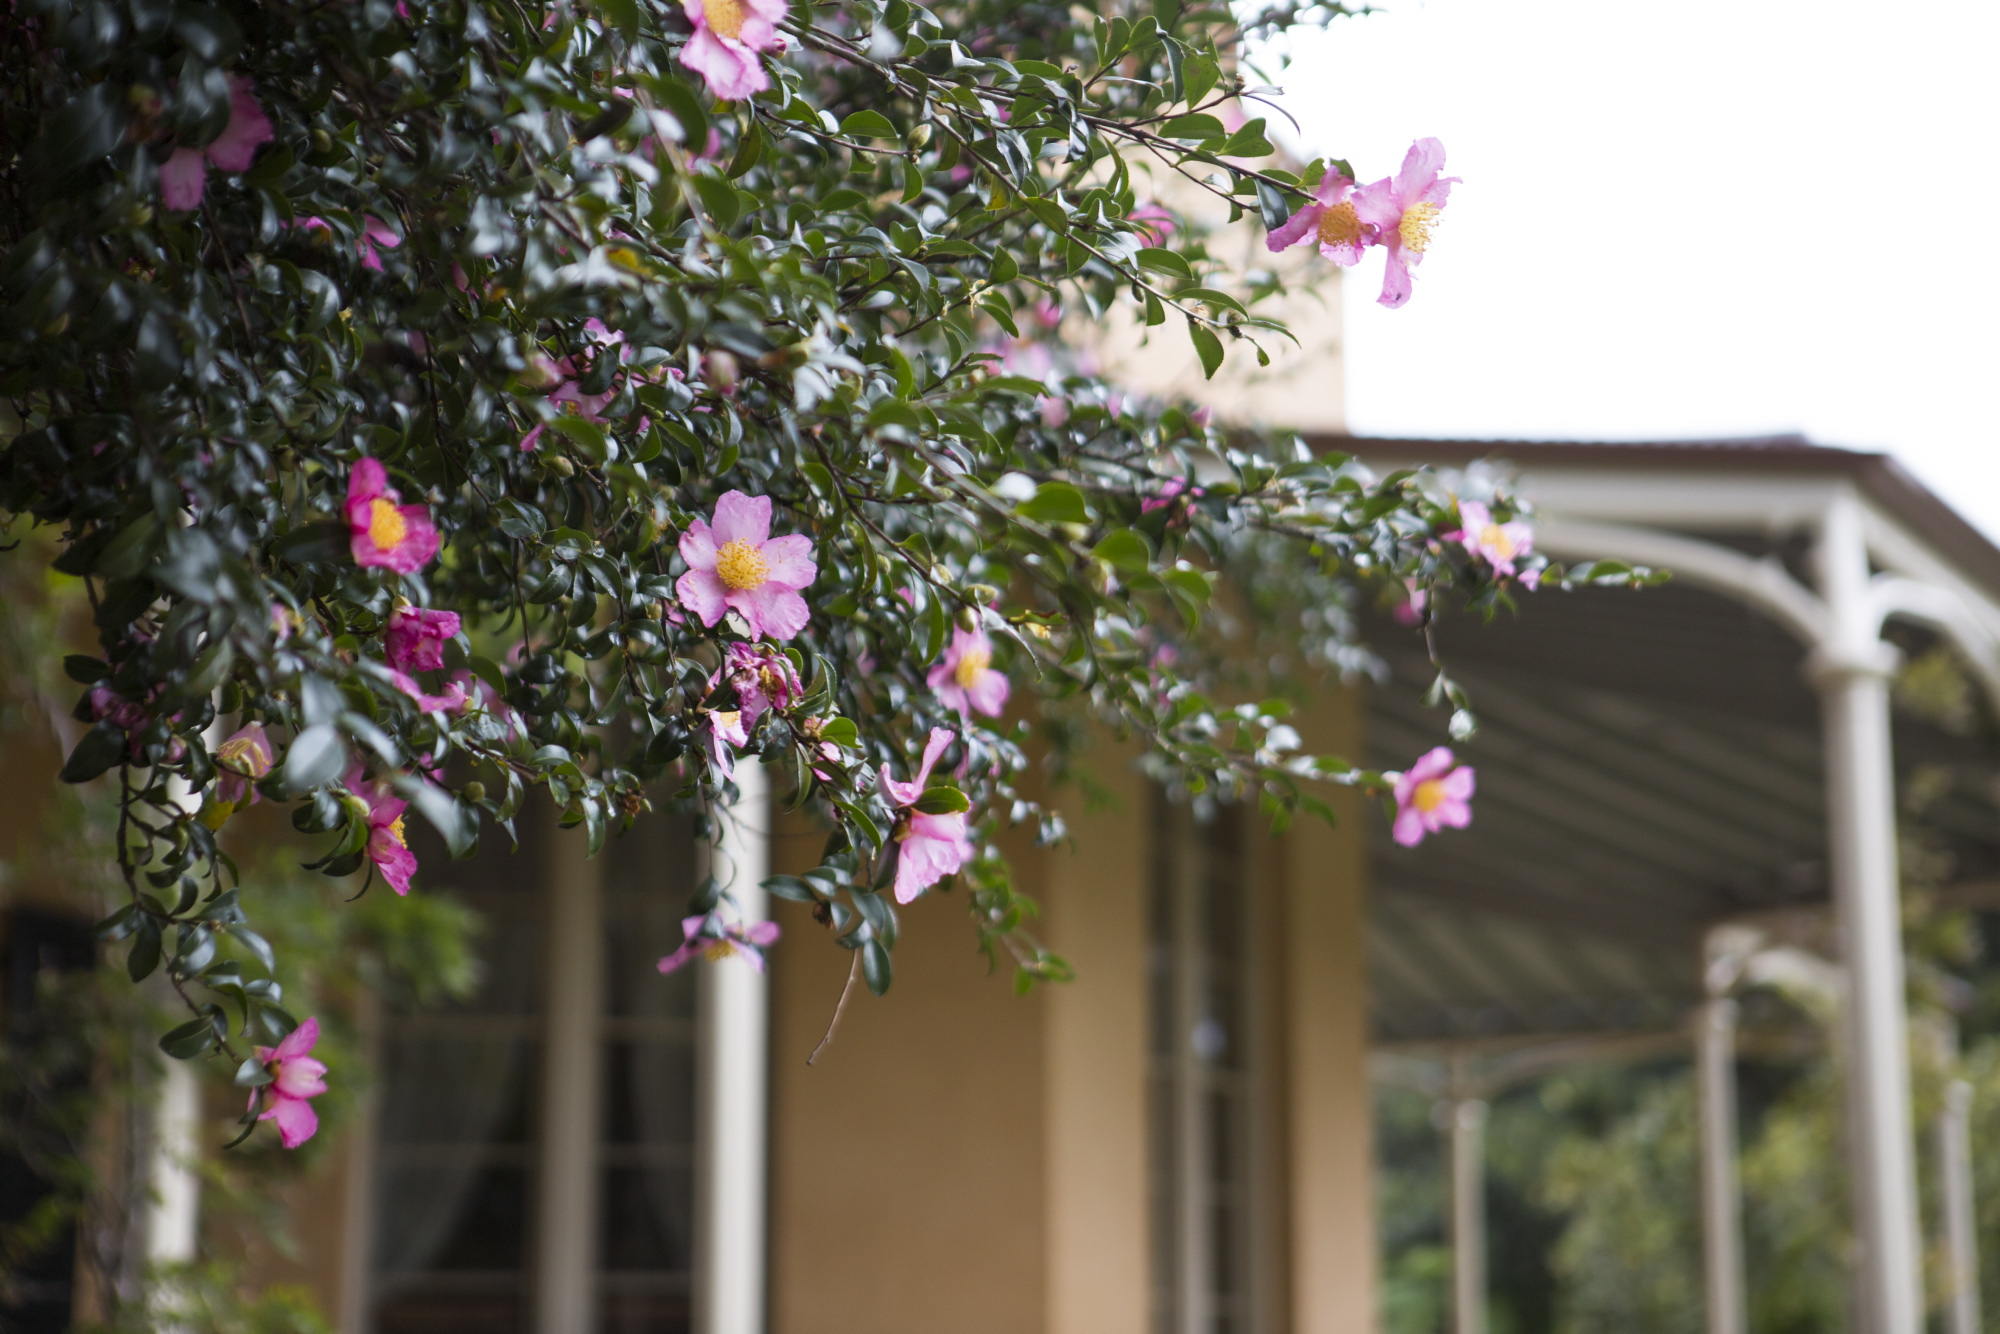 Photograph of a camellia with pink flowers beside Vaucluse House